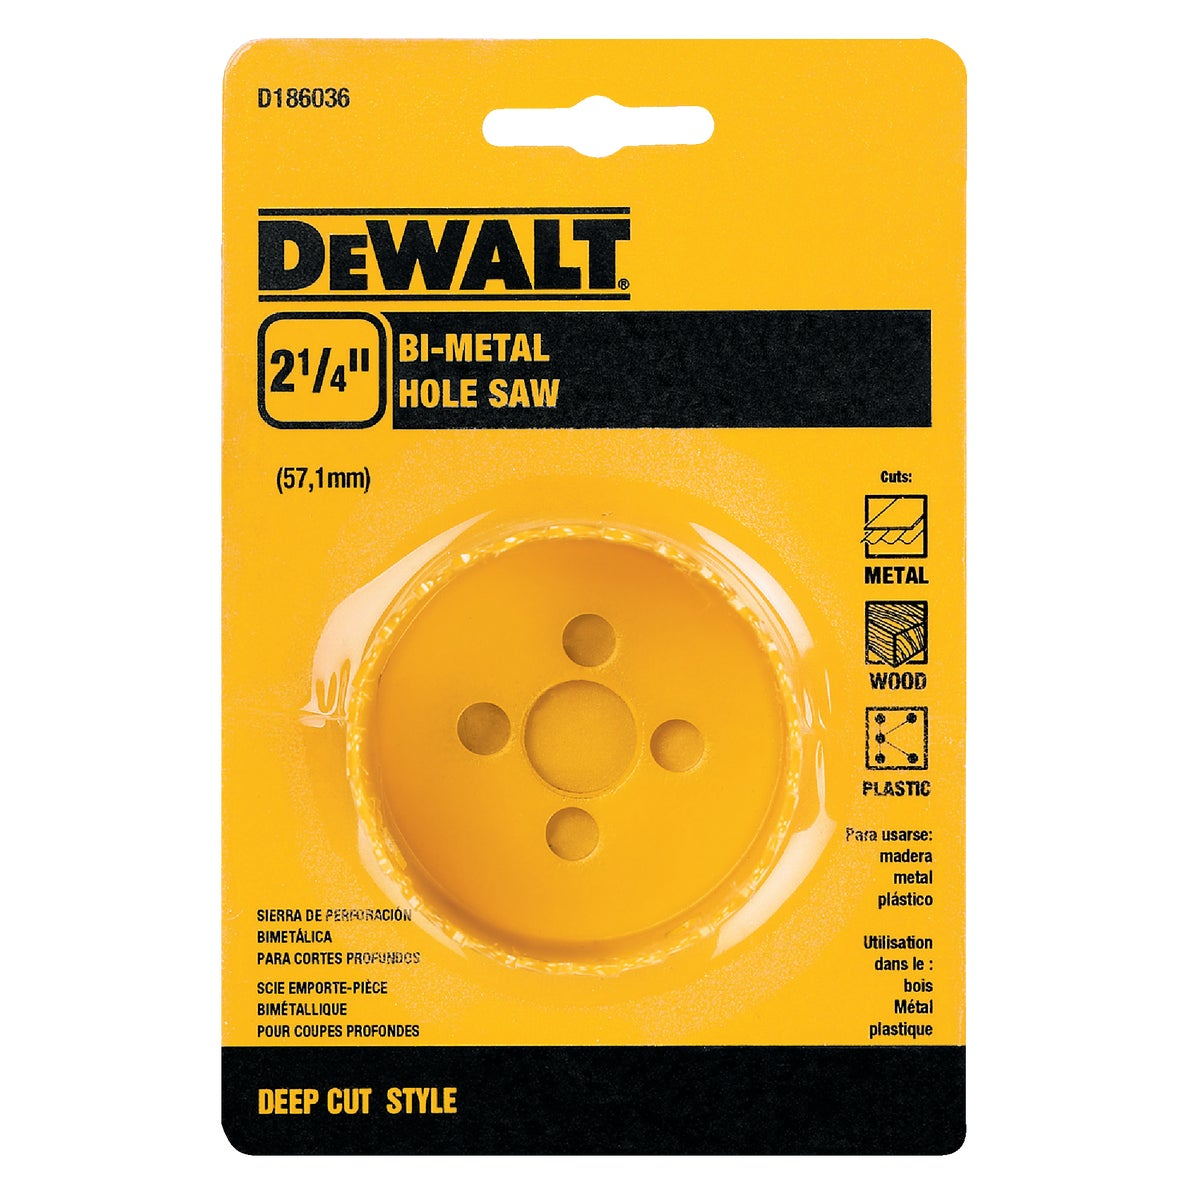 "2-1/4"" HOLE SAW - D180036 by DeWalt"